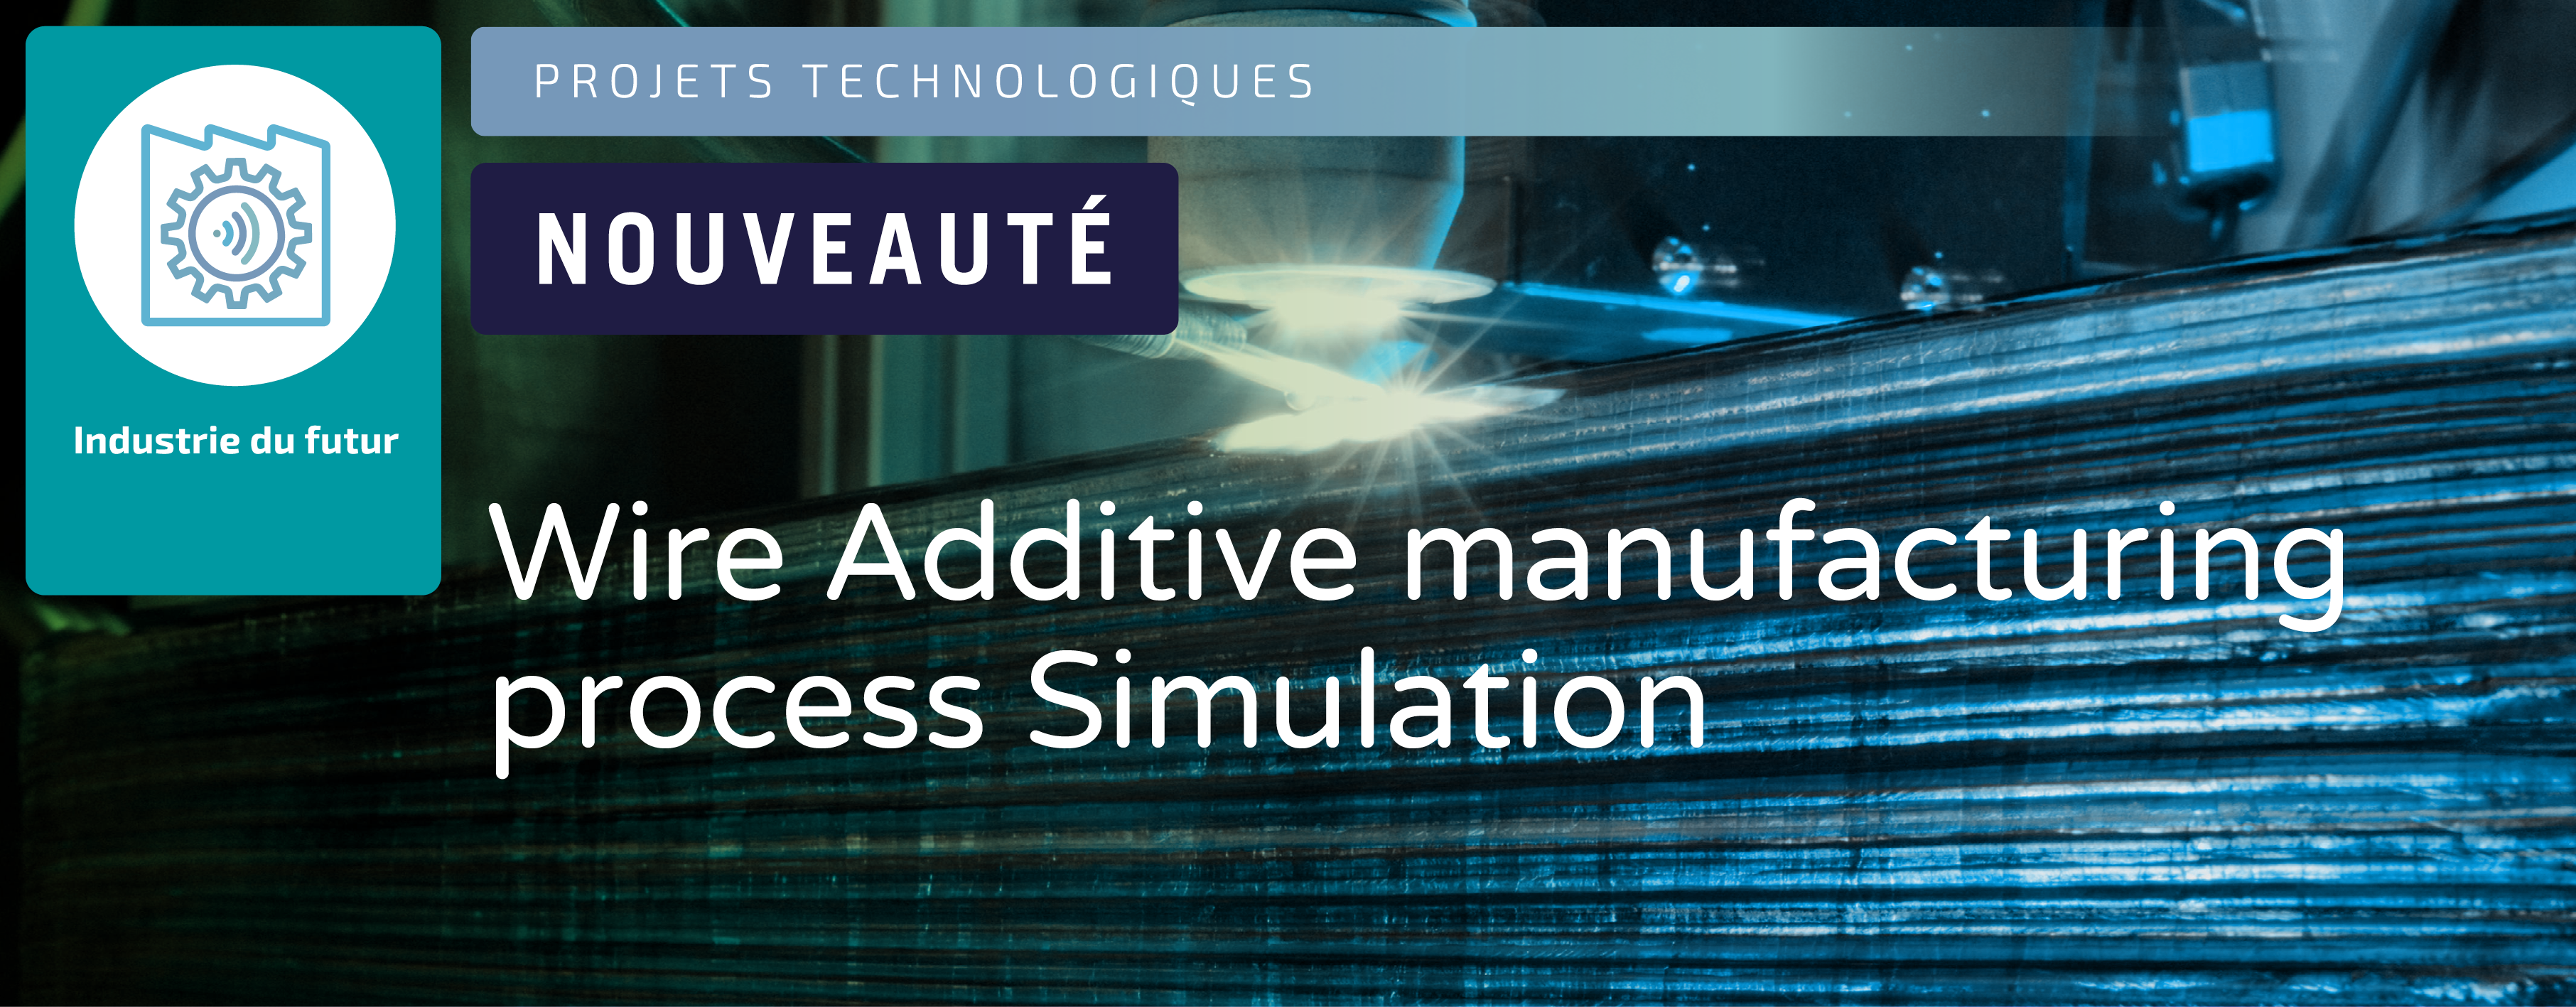 Additive Manufacturing: SystemX launches the WAS project